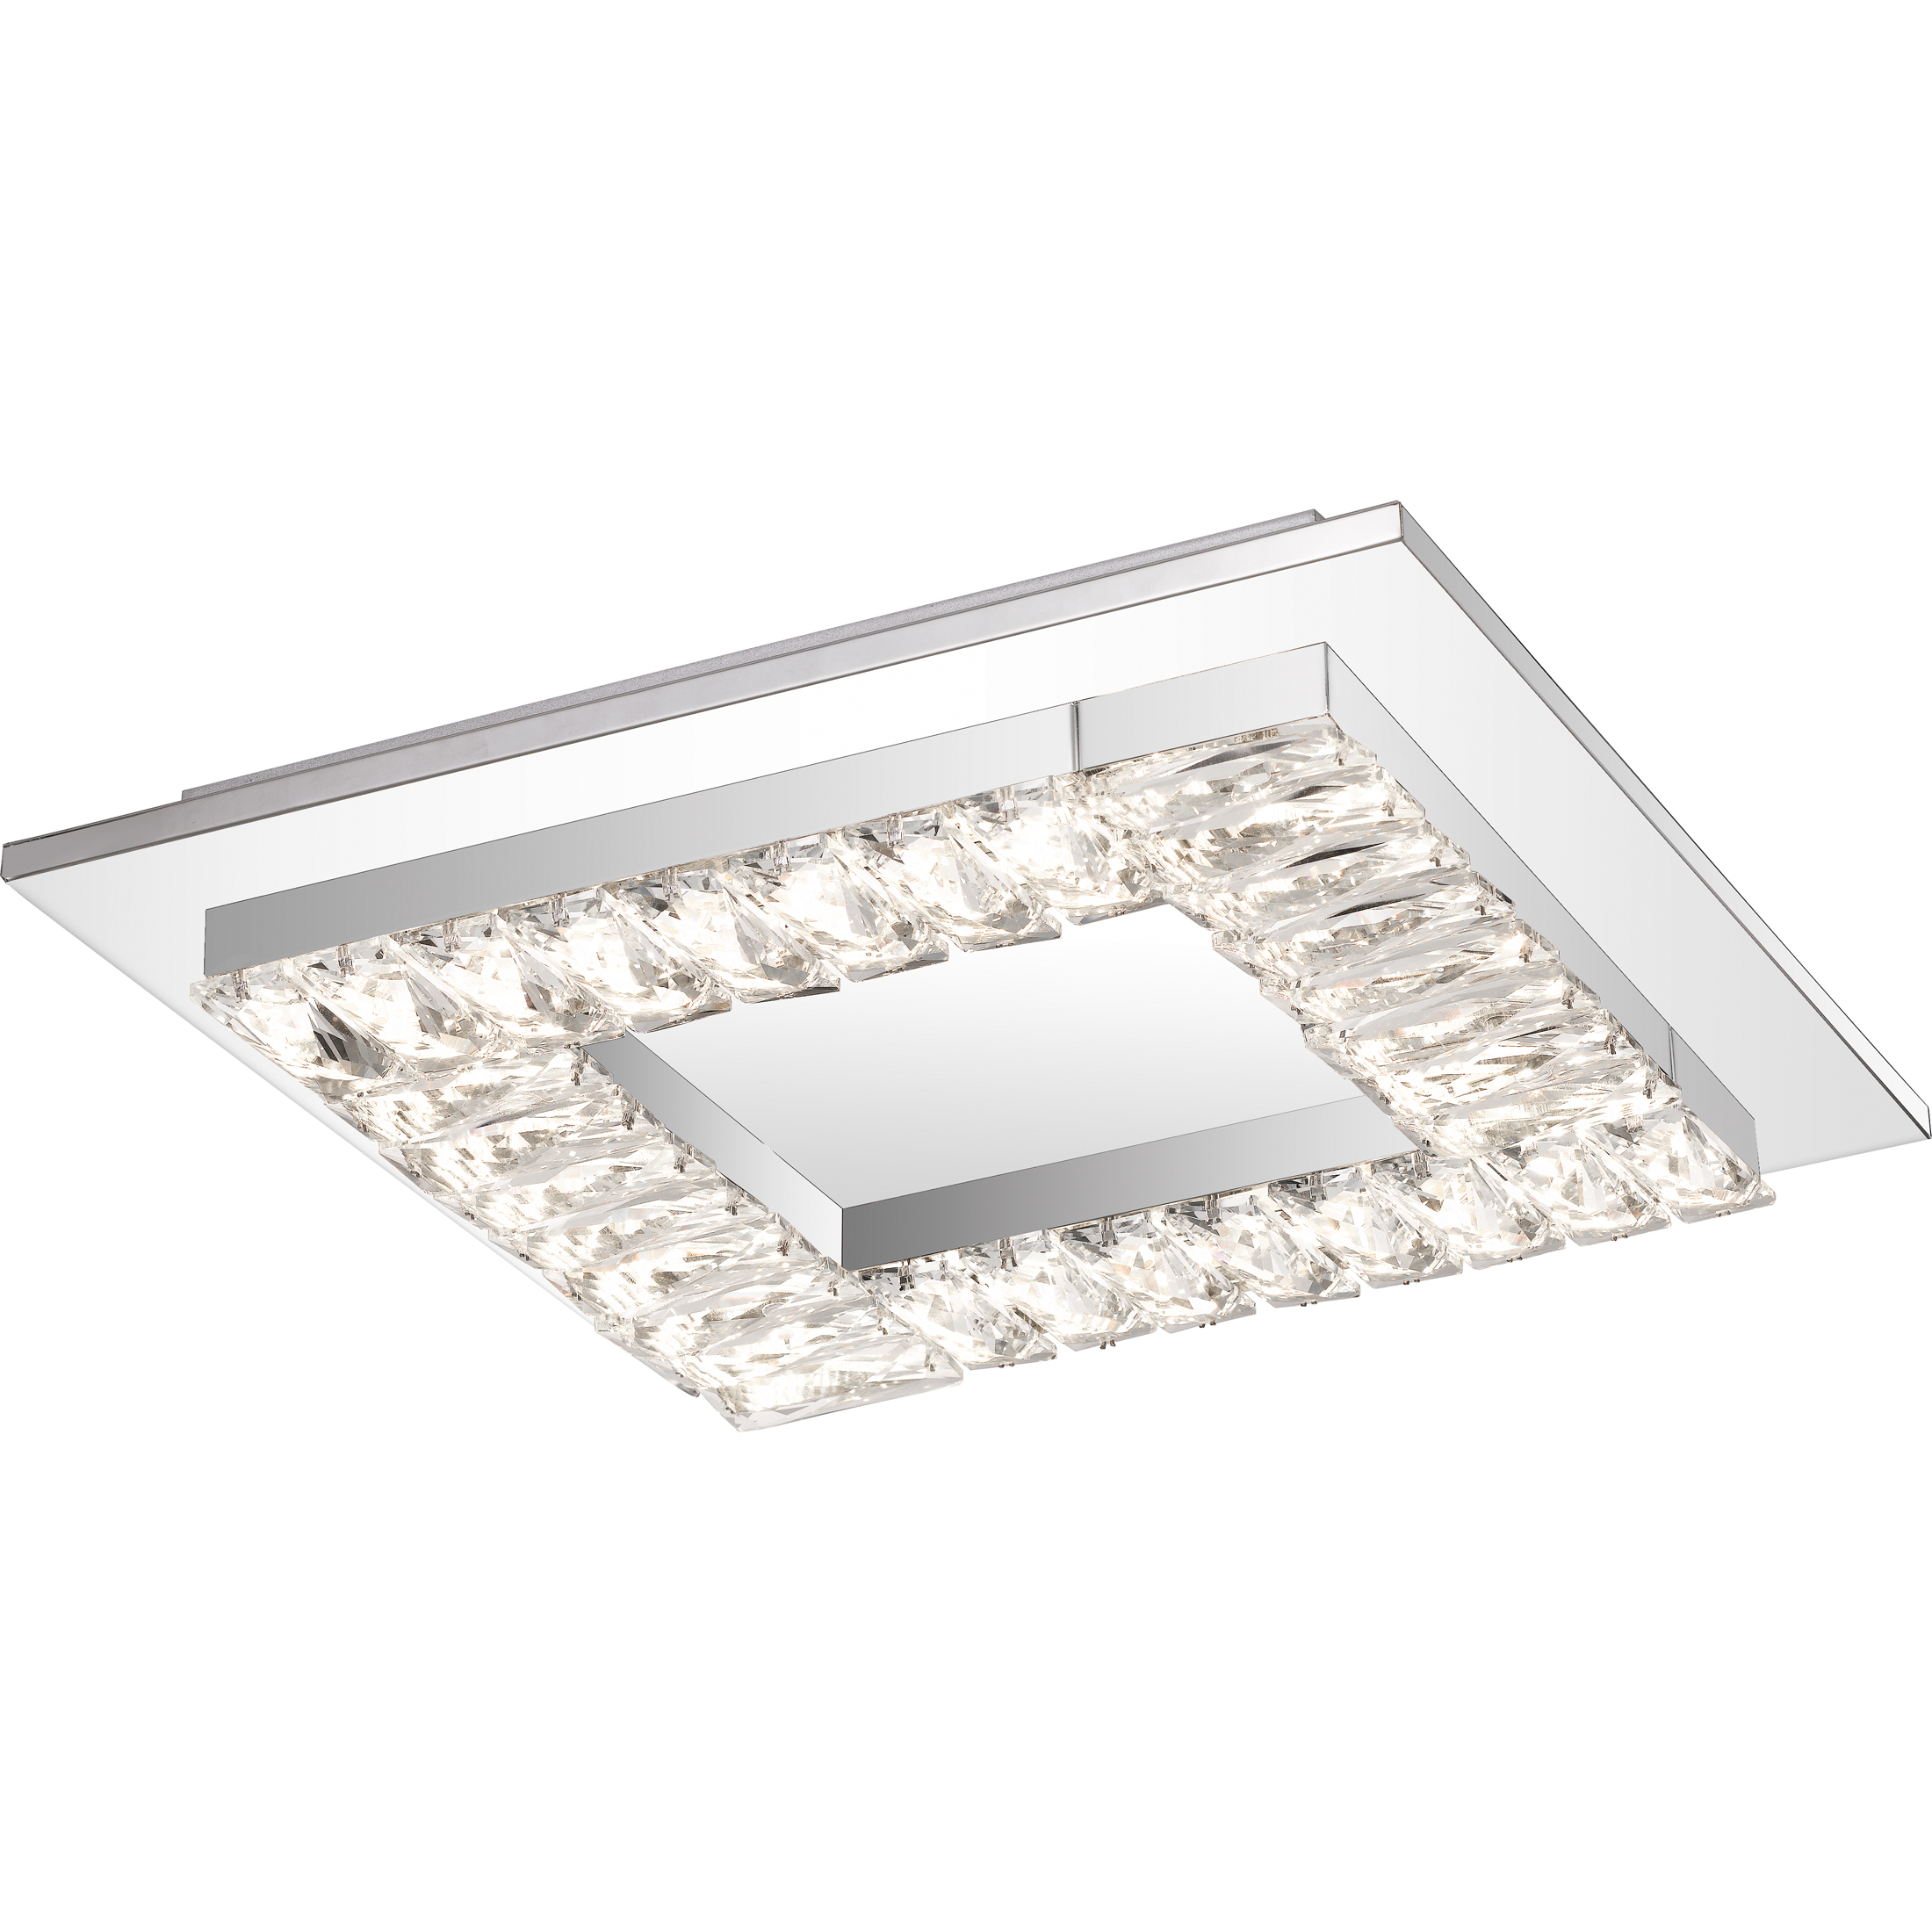 Ceiling Light Fixture By Quoizel